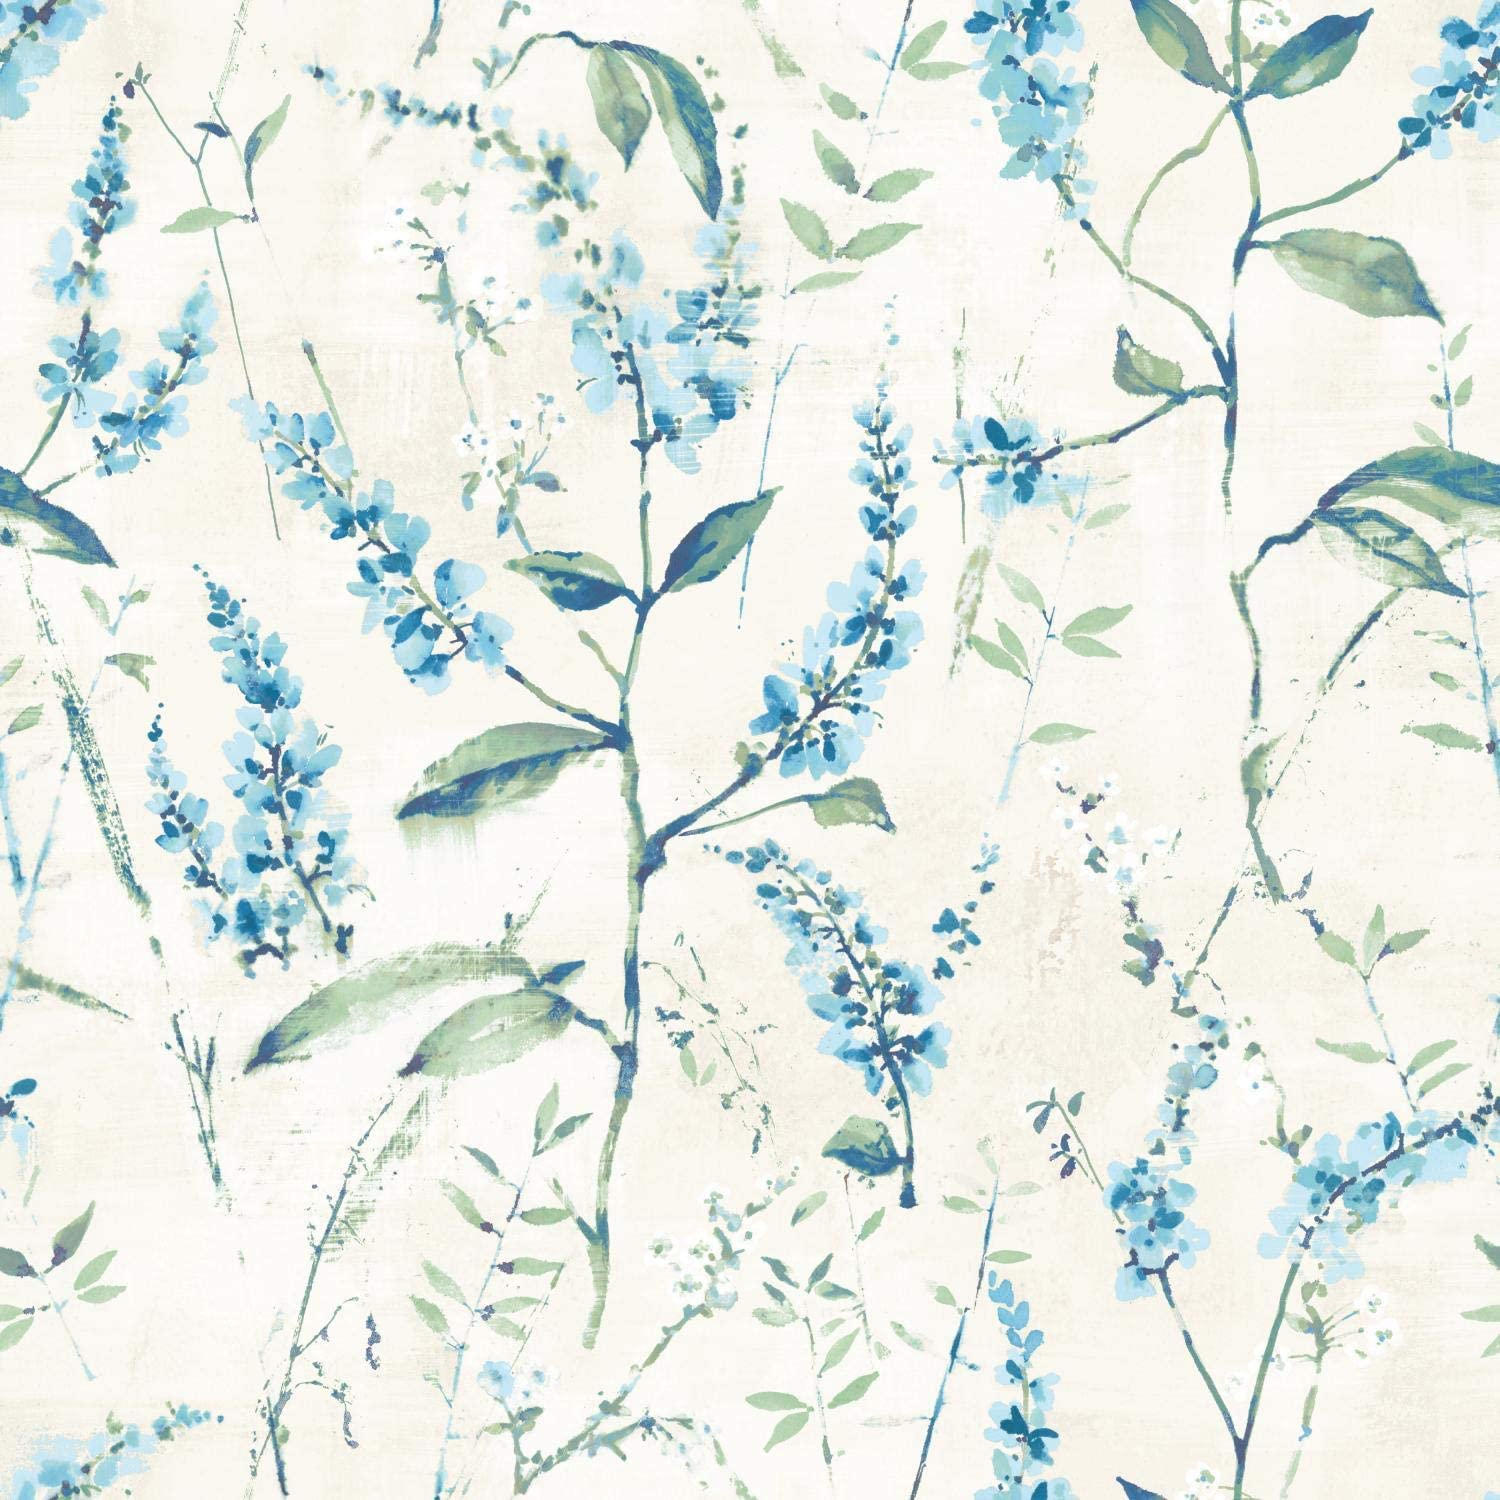 Amazon Com Roommates Blue Floral Sprig Peel And Stick Wallpaper